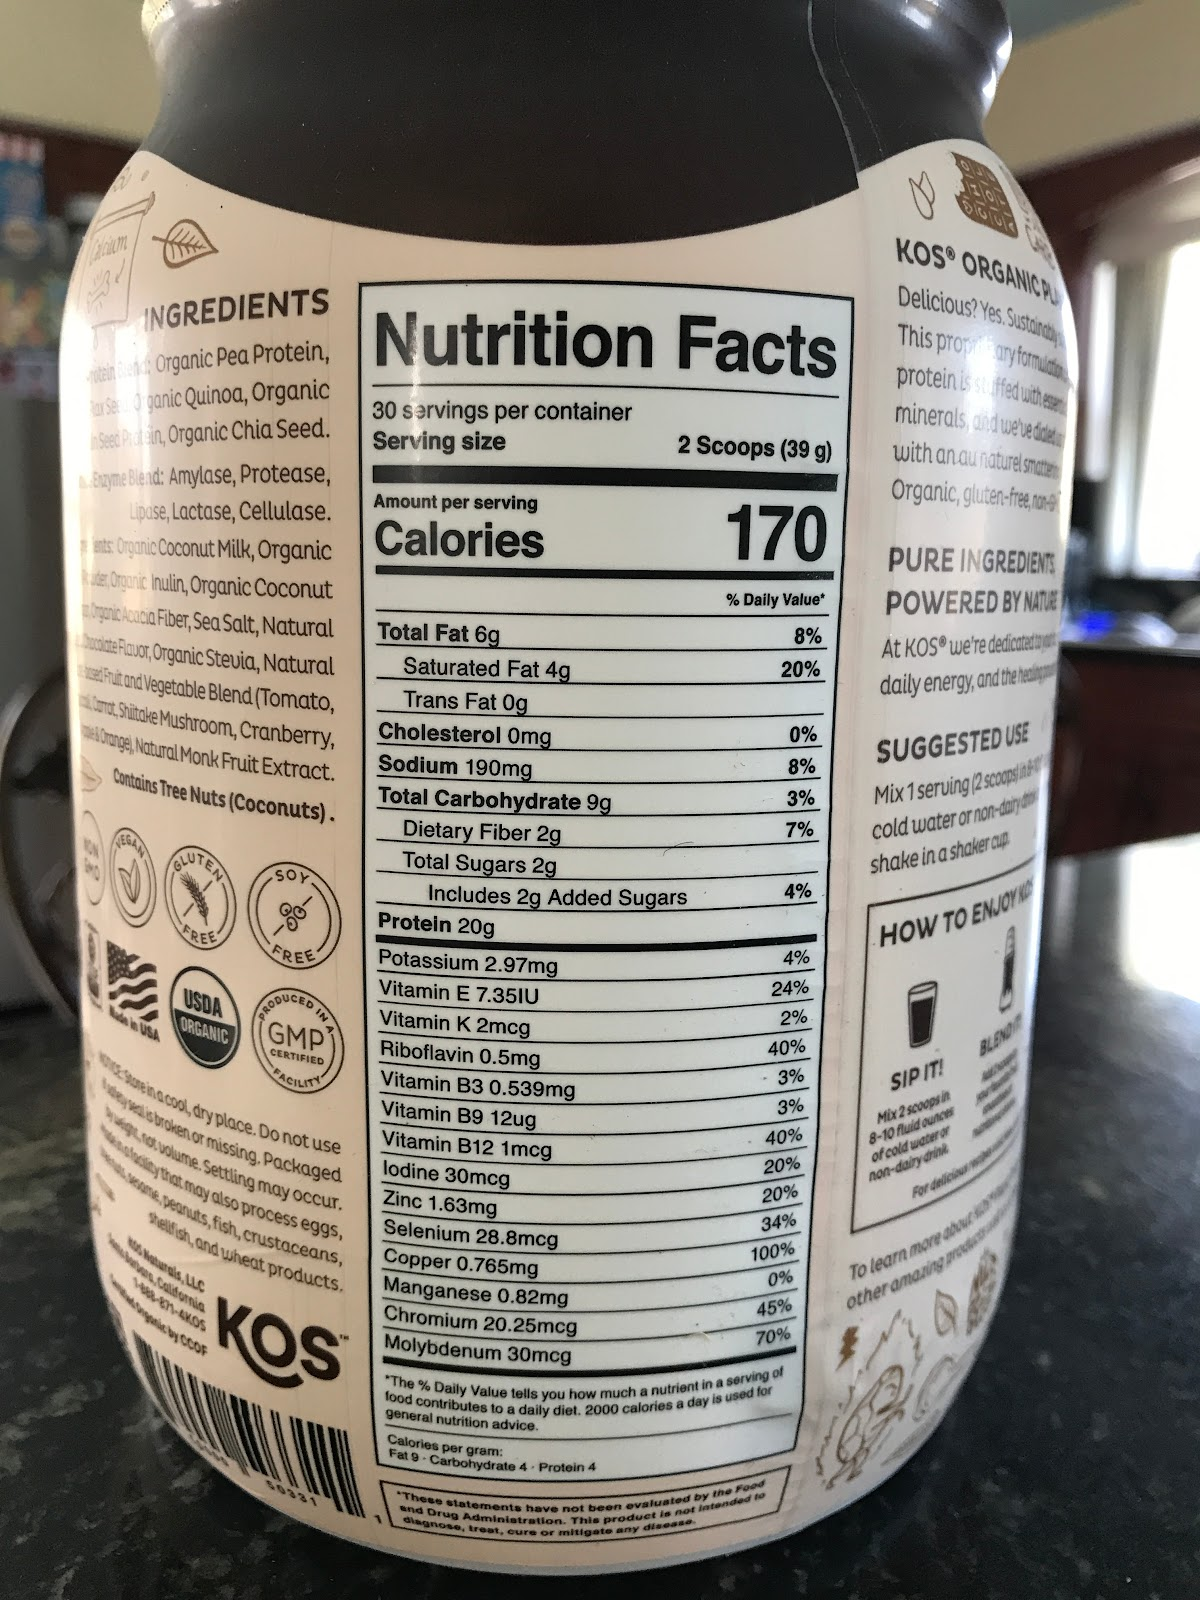 KOS Organic Plant Protein nutrition facts.